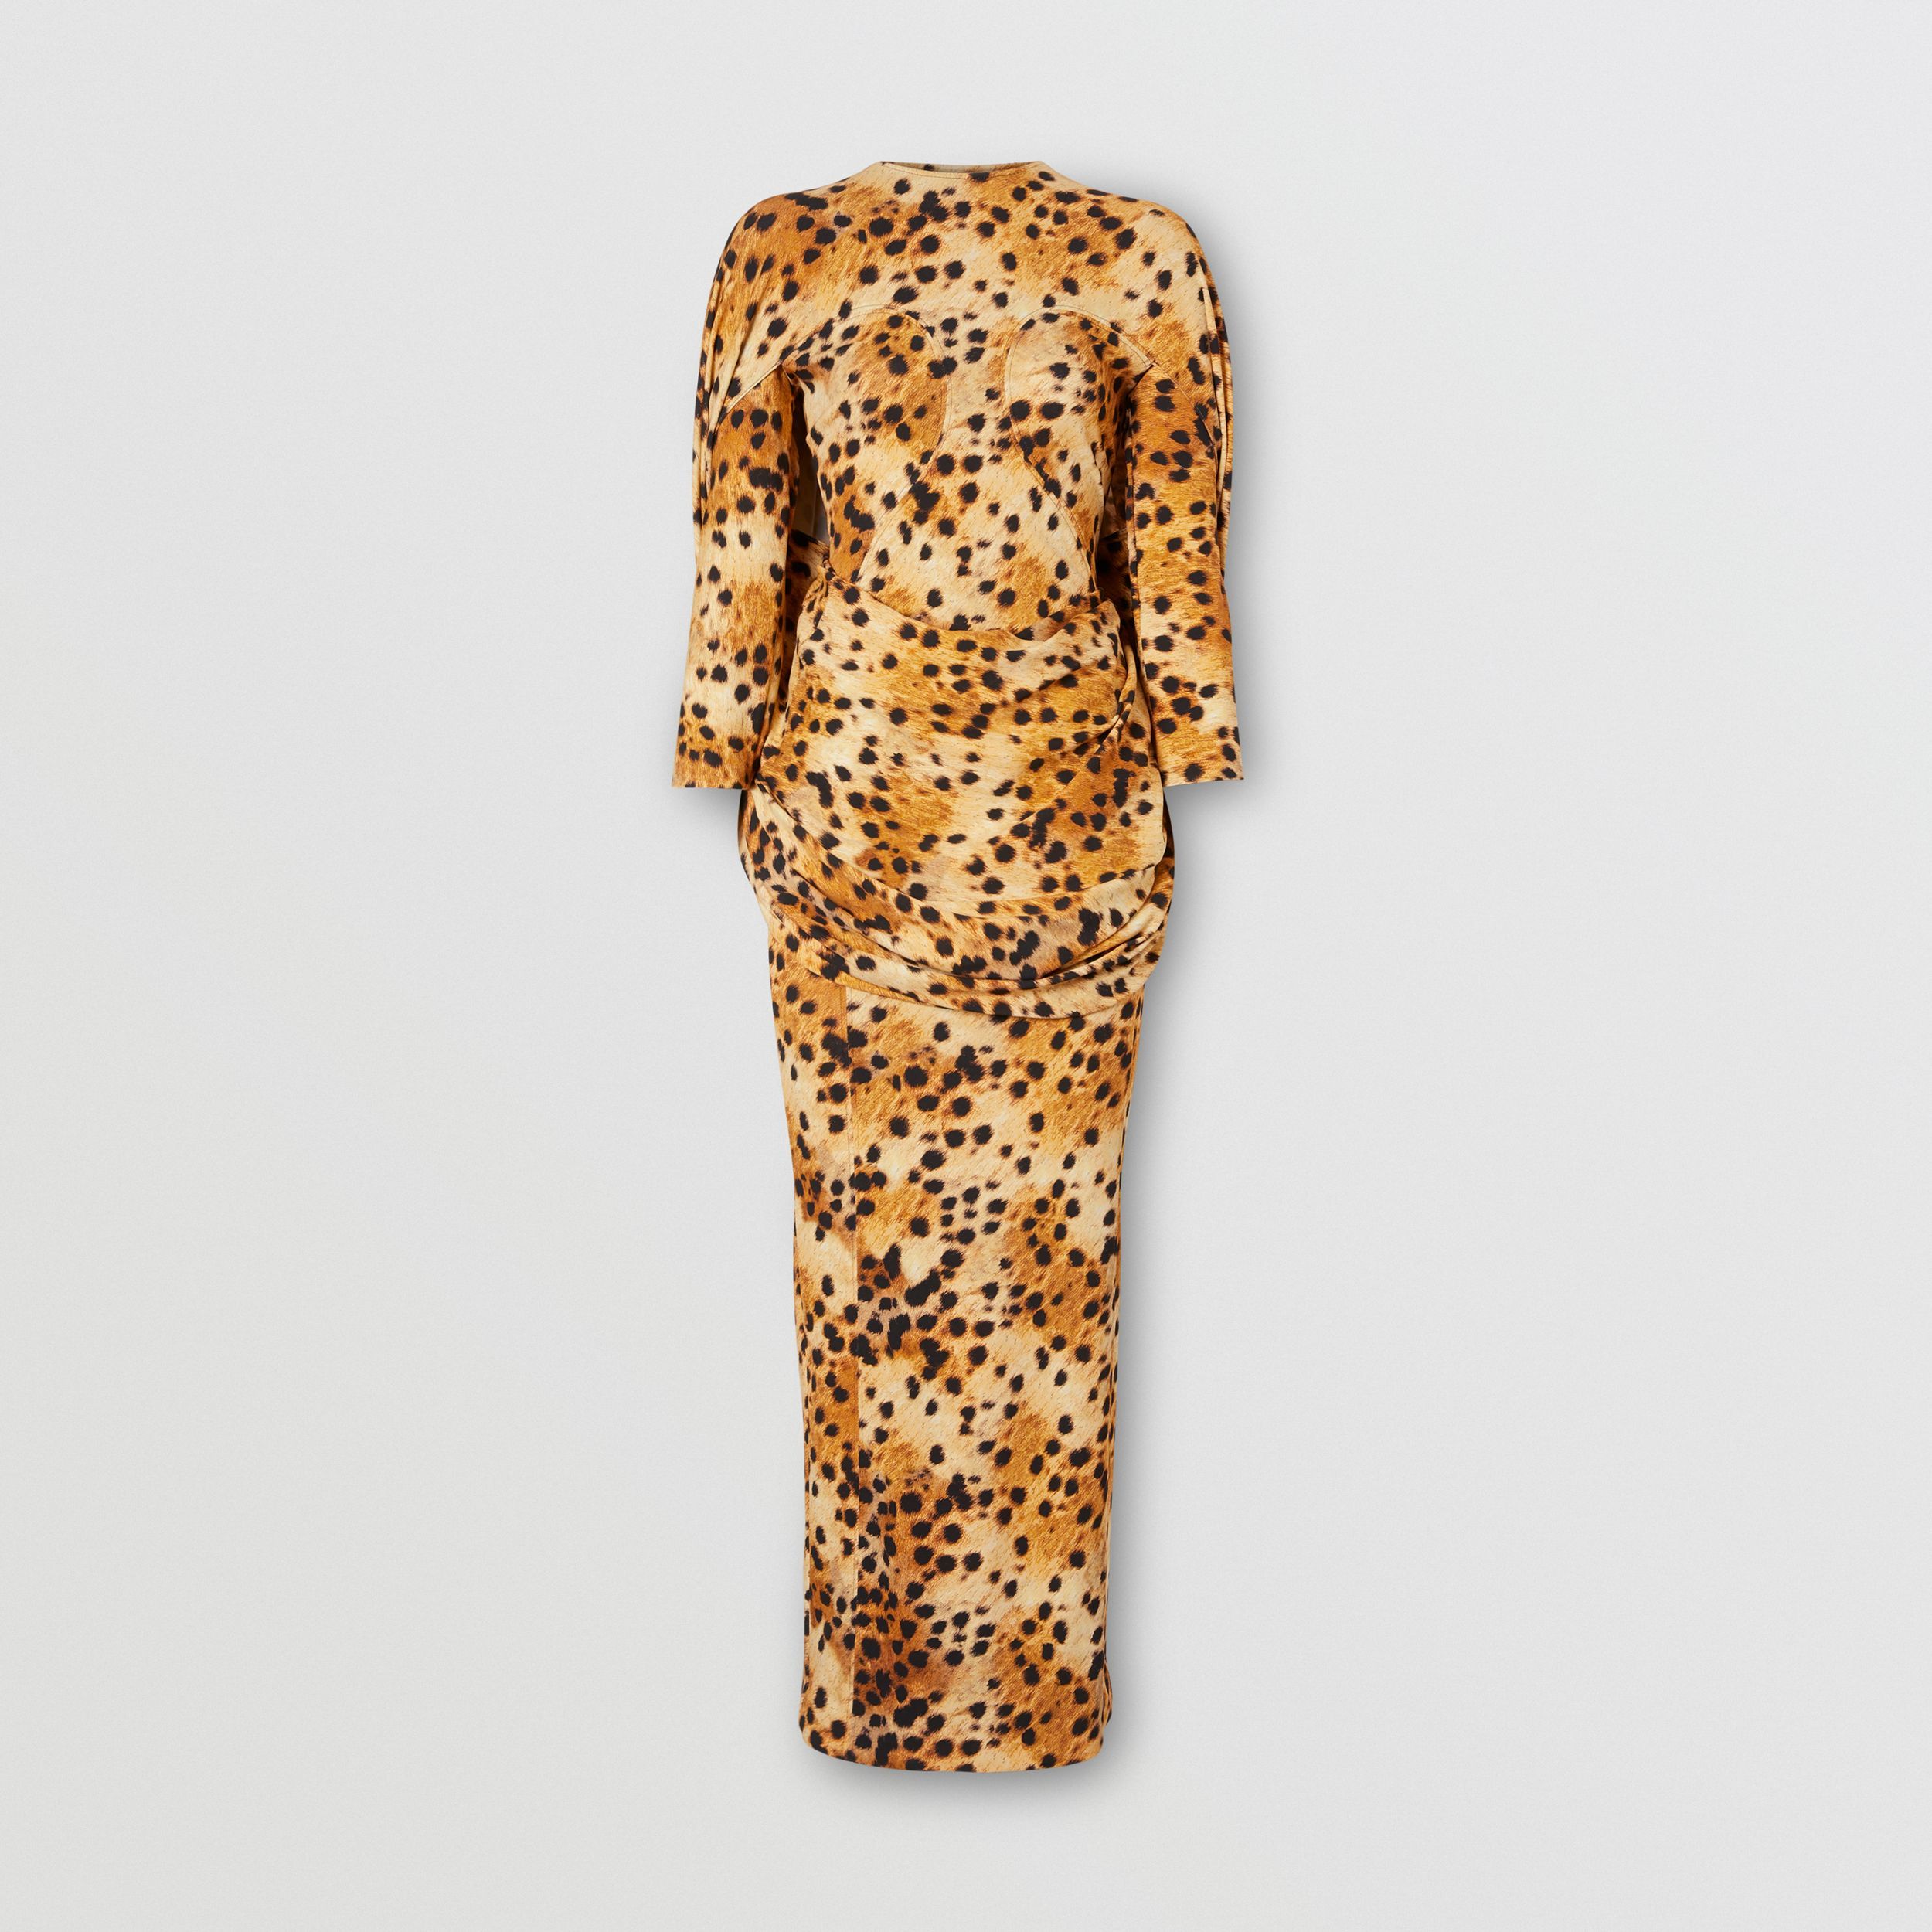 Sash Detail Spotted Monkey Print Dress in Nutmeg - Women | Burberry - 3